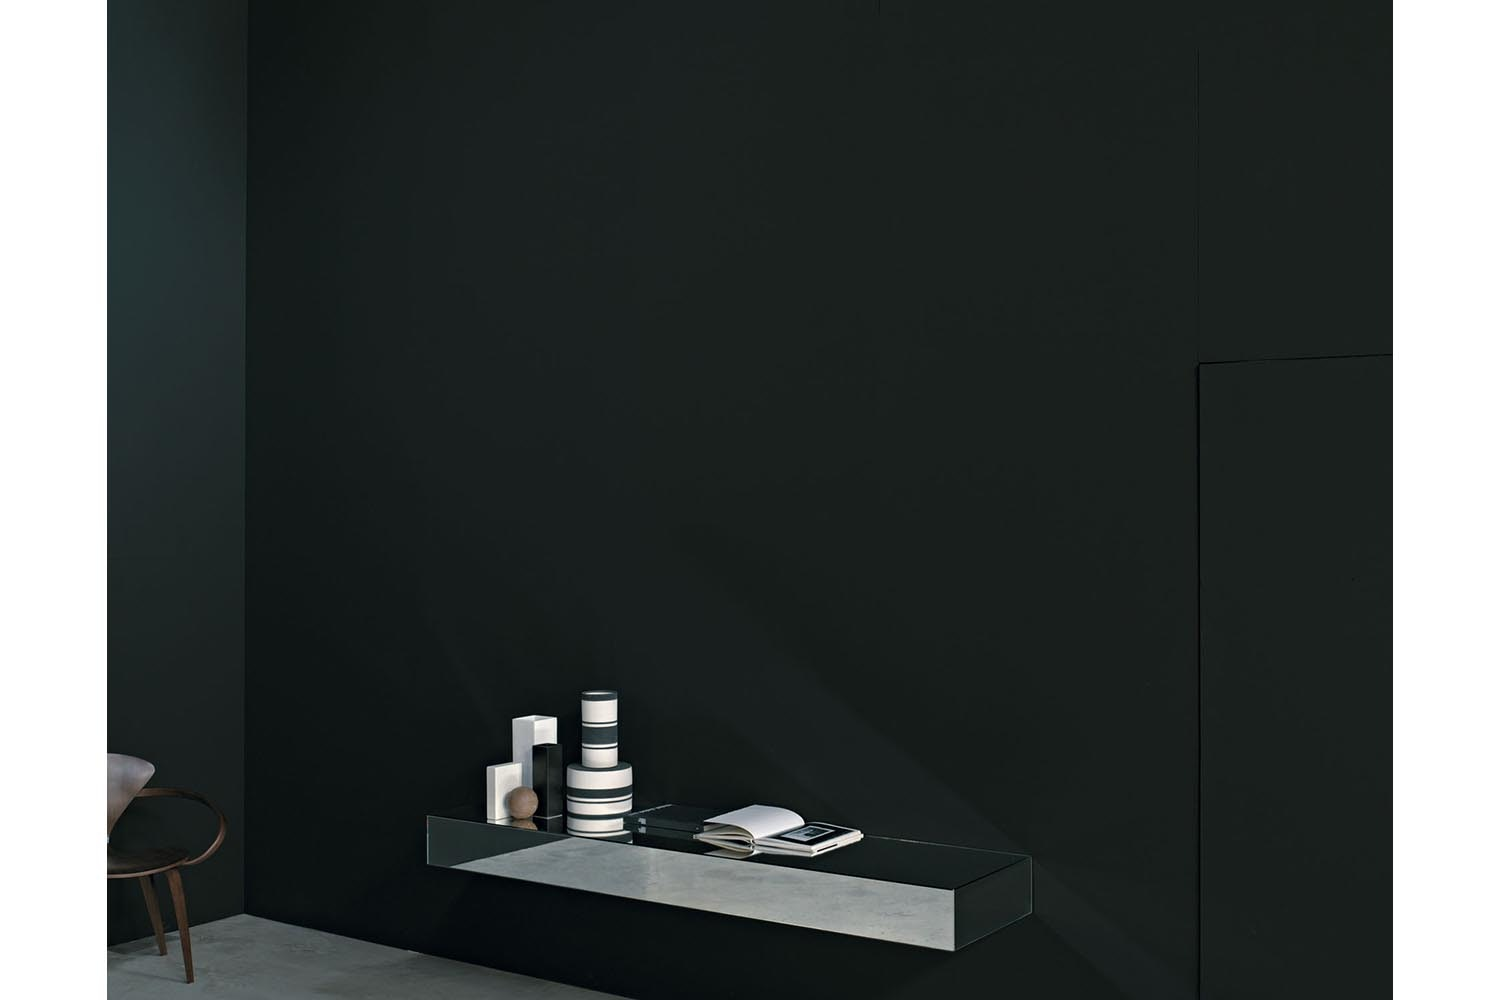 I Massi Mensole Wall Mounted Shelves by Claudio Silvestrin for Glas Italia